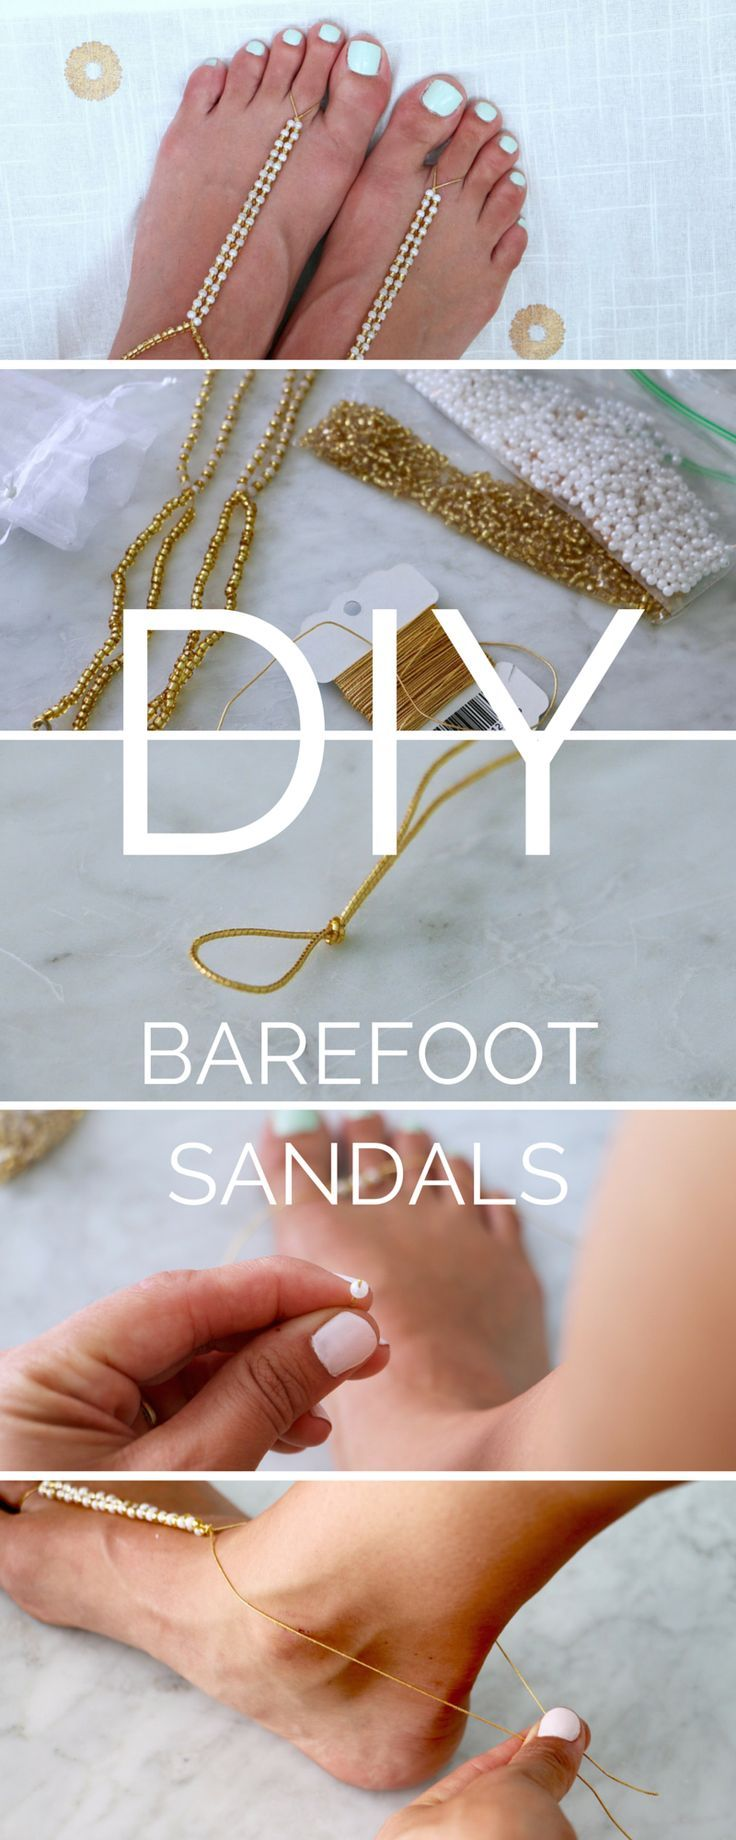 An Easy Diy Barefoot Sandals Tutorial For A Beach Wedding Makes Great Beachy Bridesmaid Gift